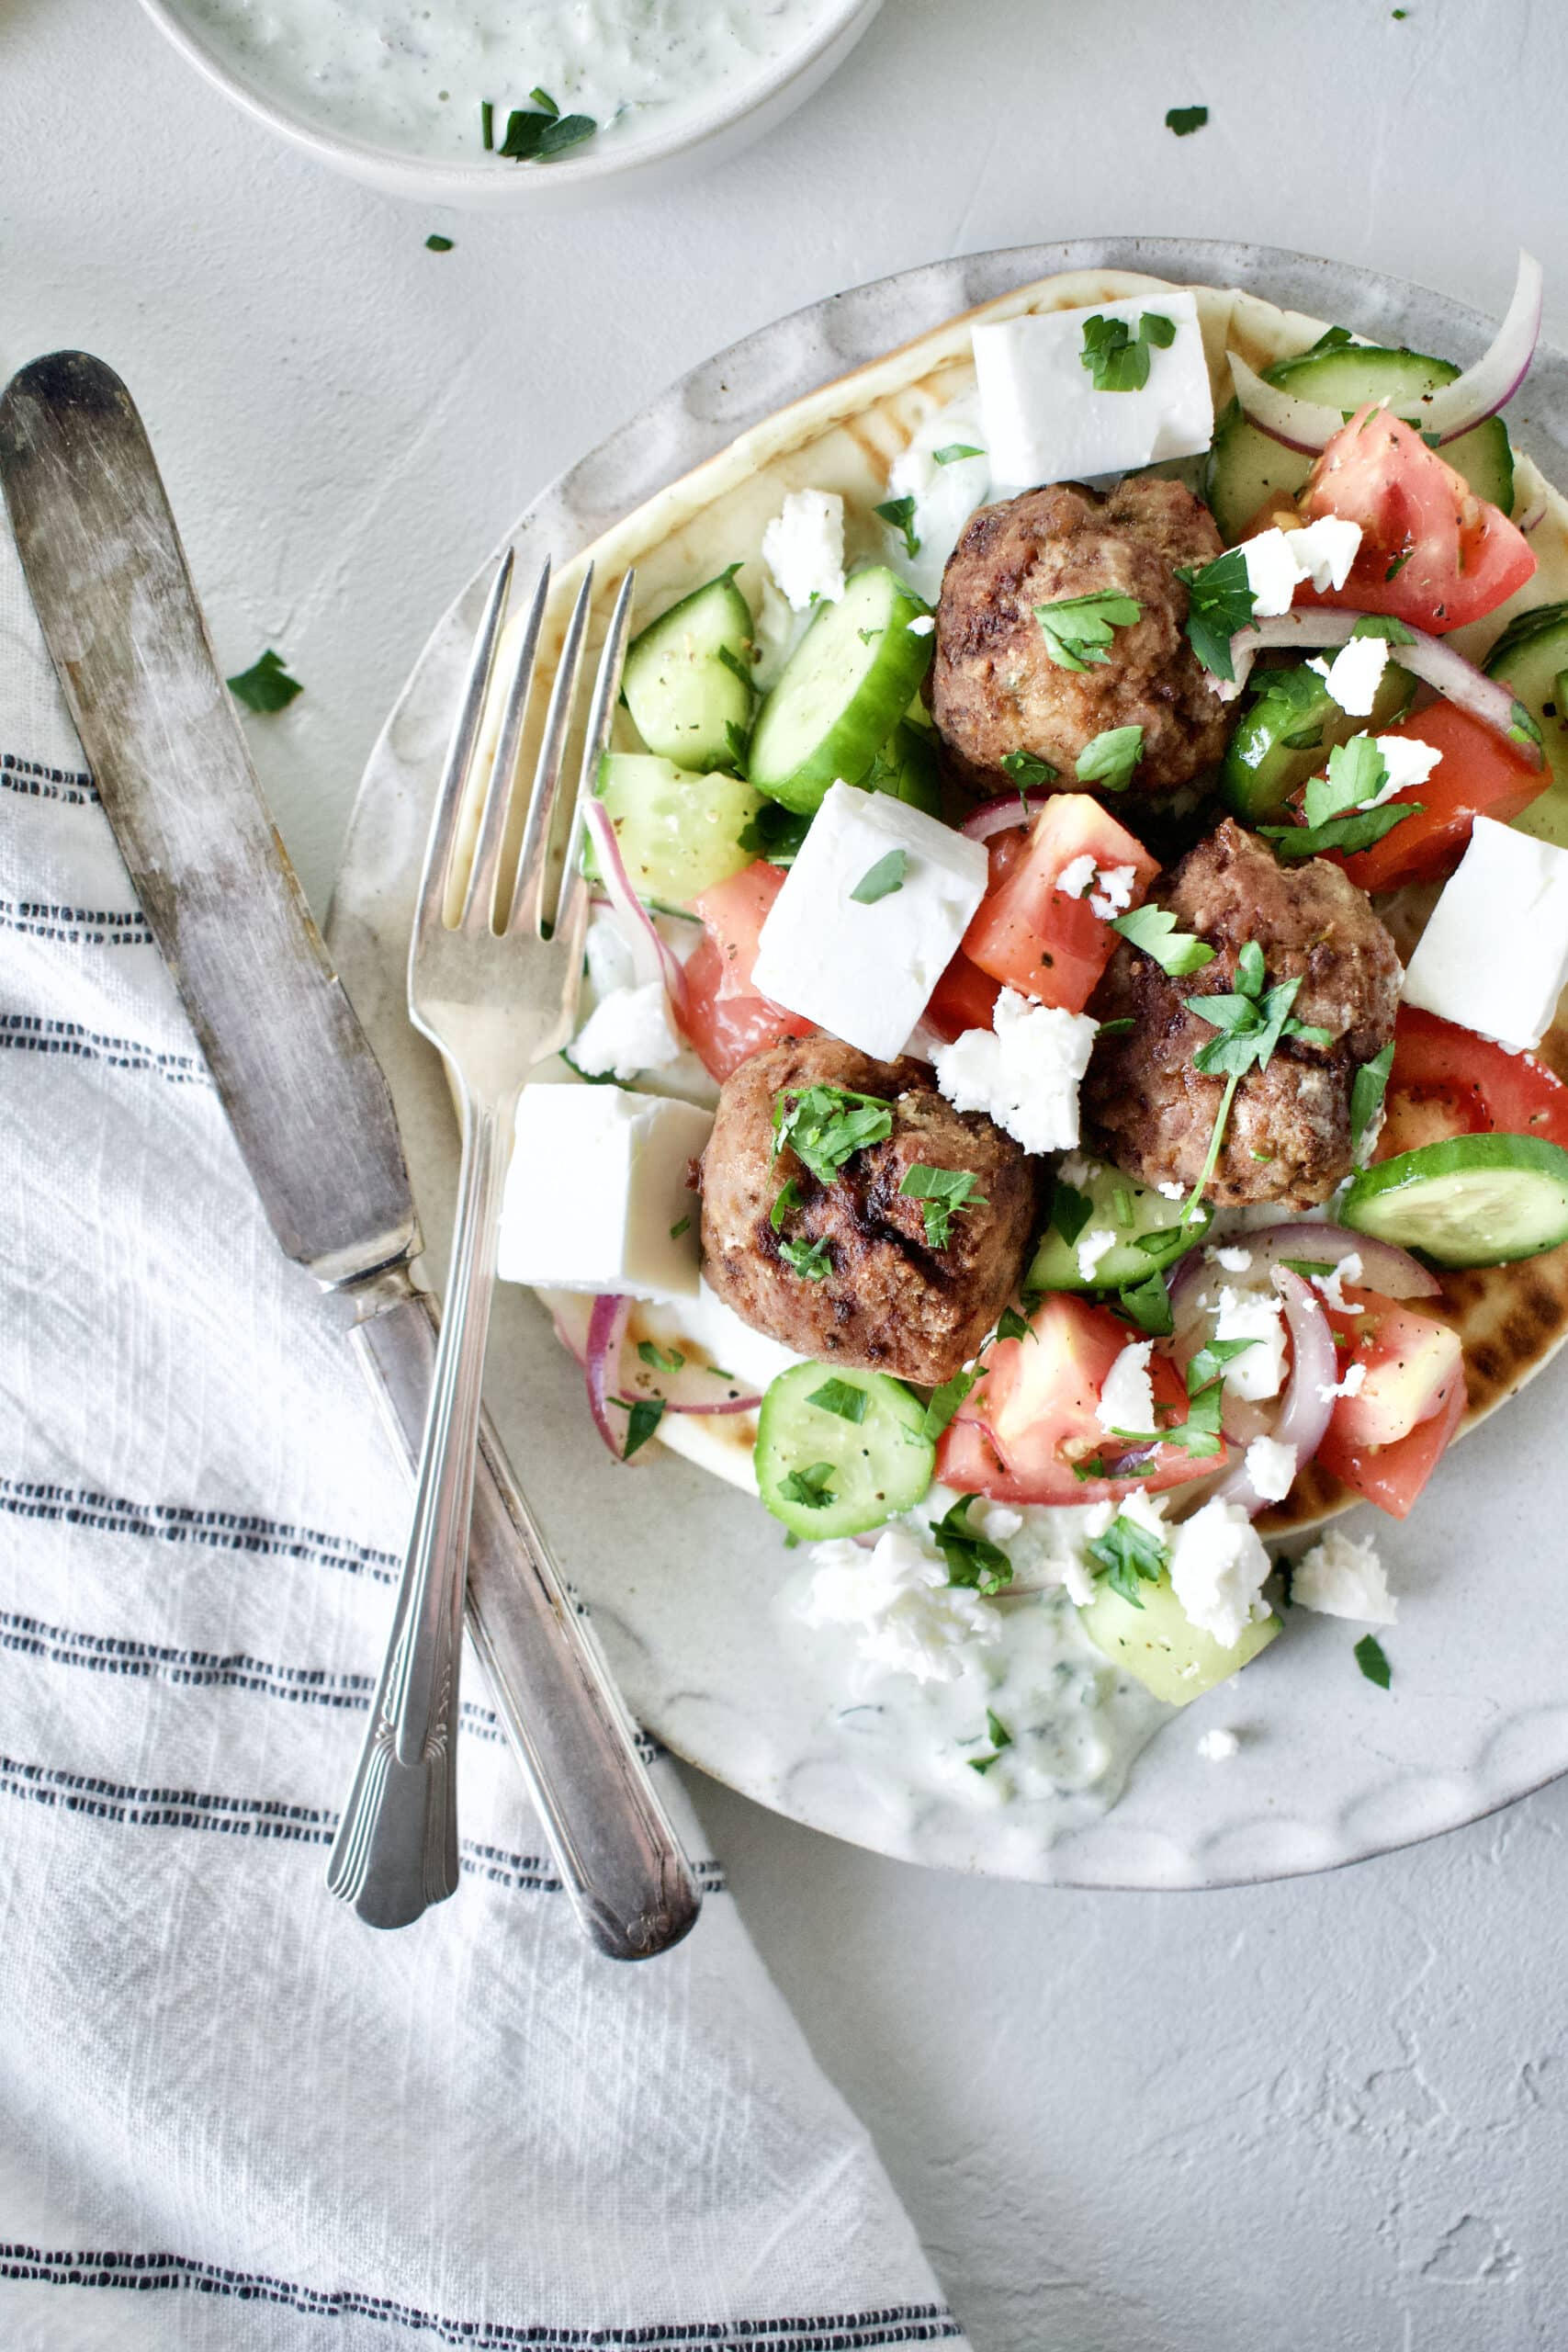 Greek Meatballs served with Greek Salad on top, over a pita bread with Tzatziki sauce.